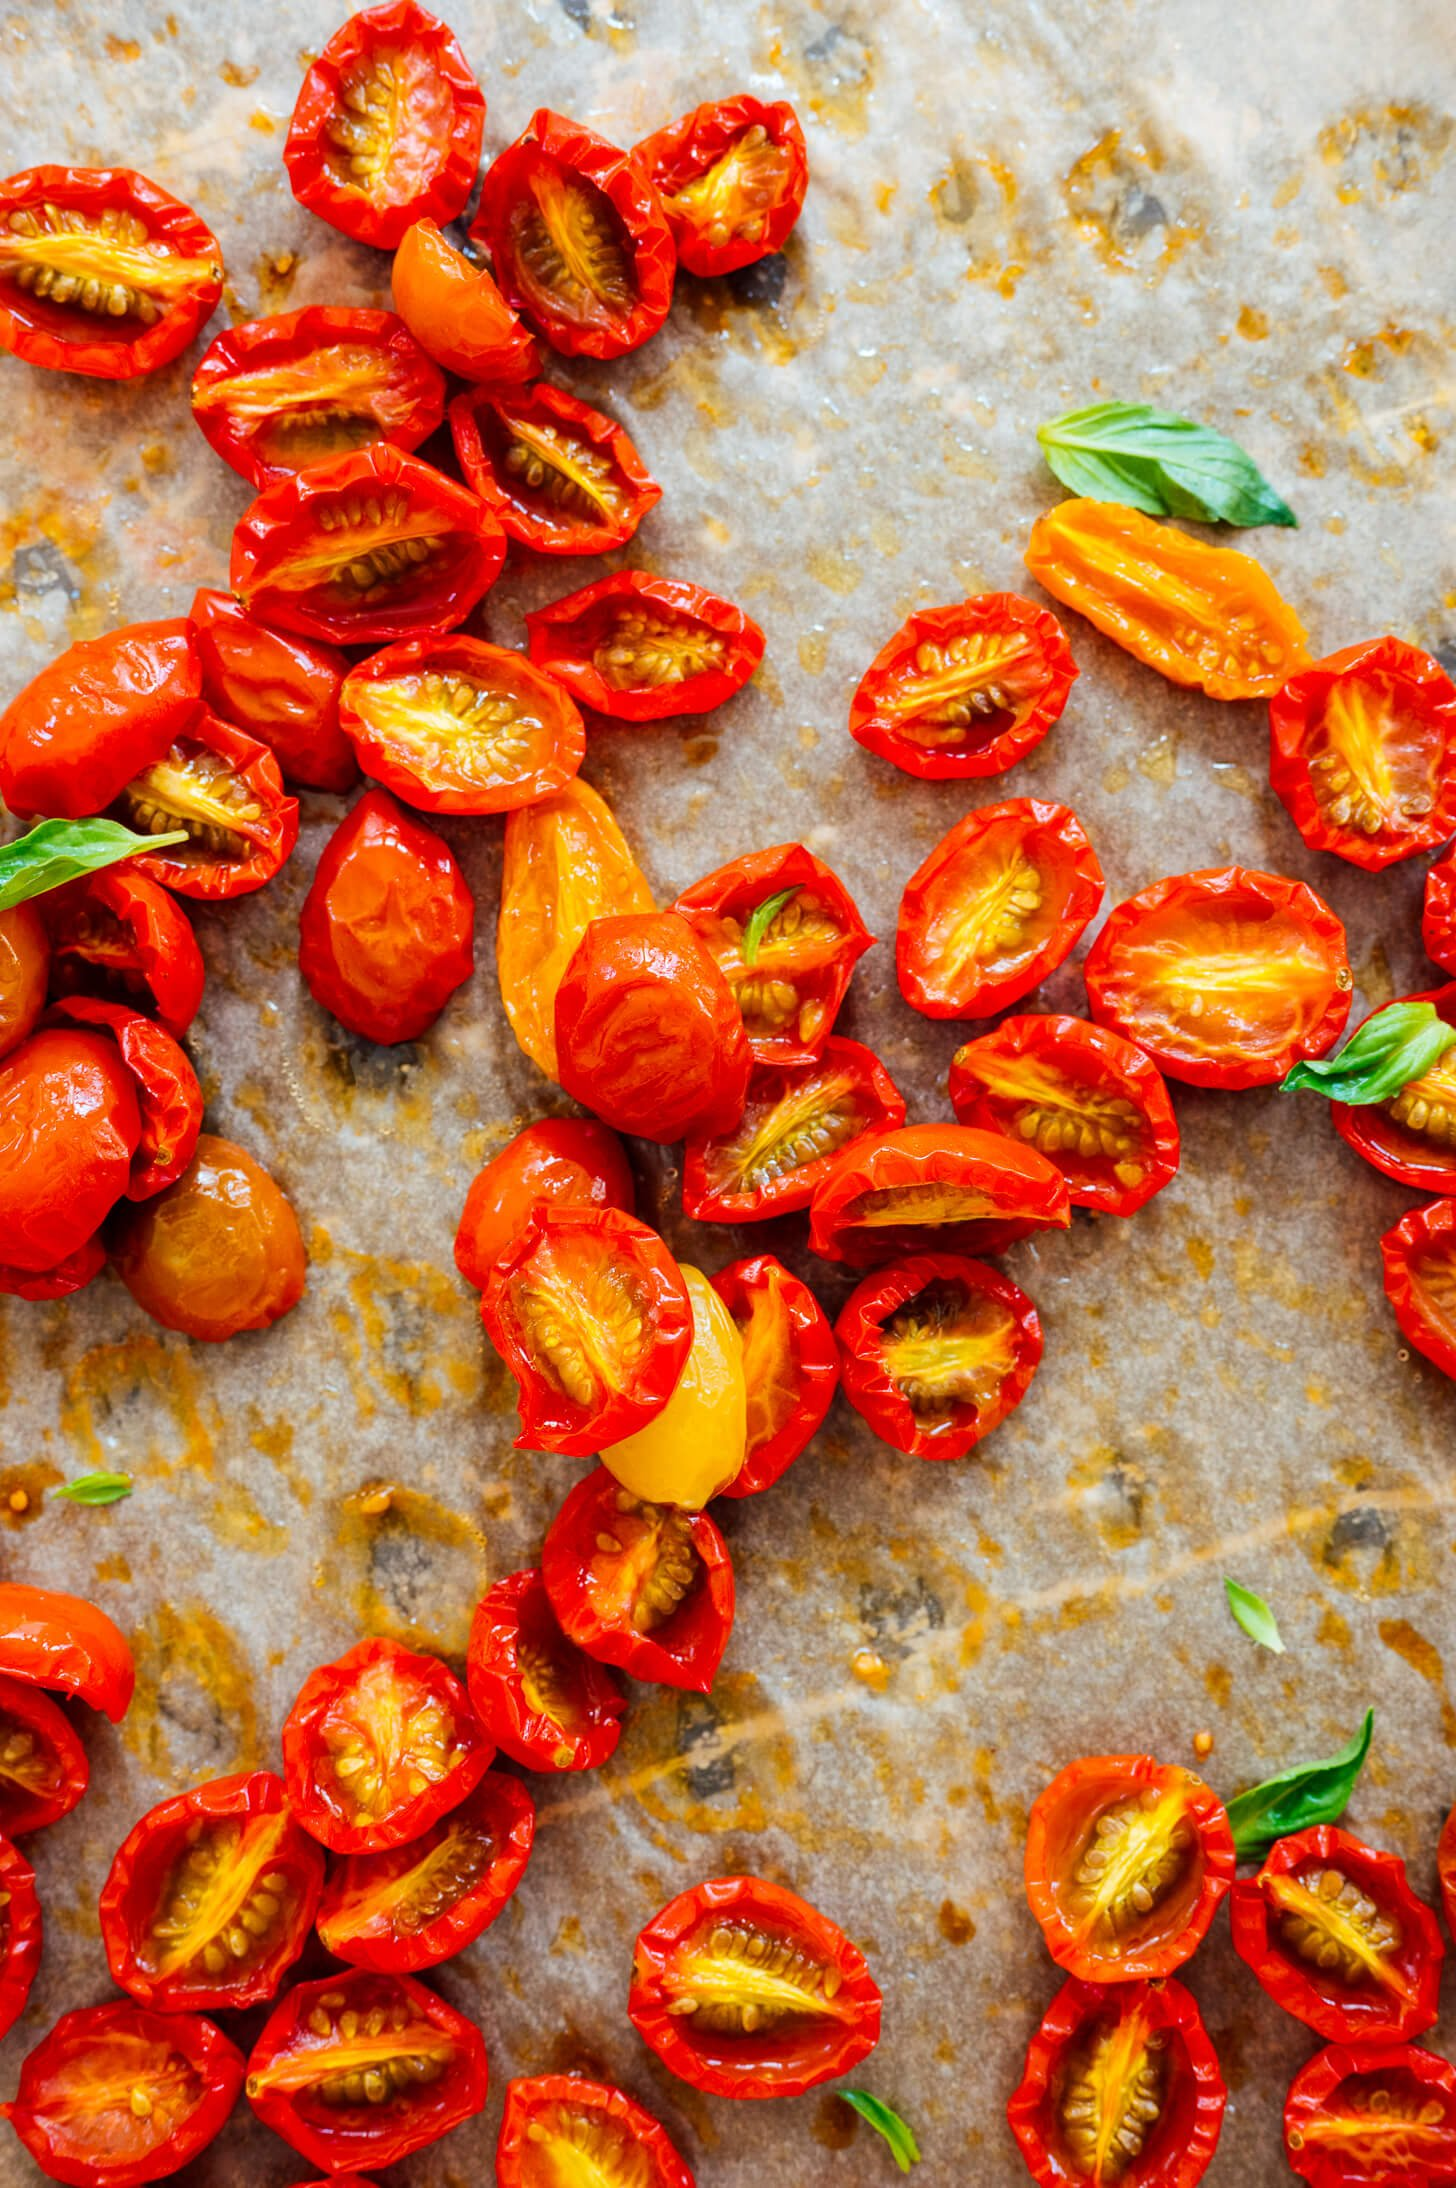 roasted cherry tomatoes close-up